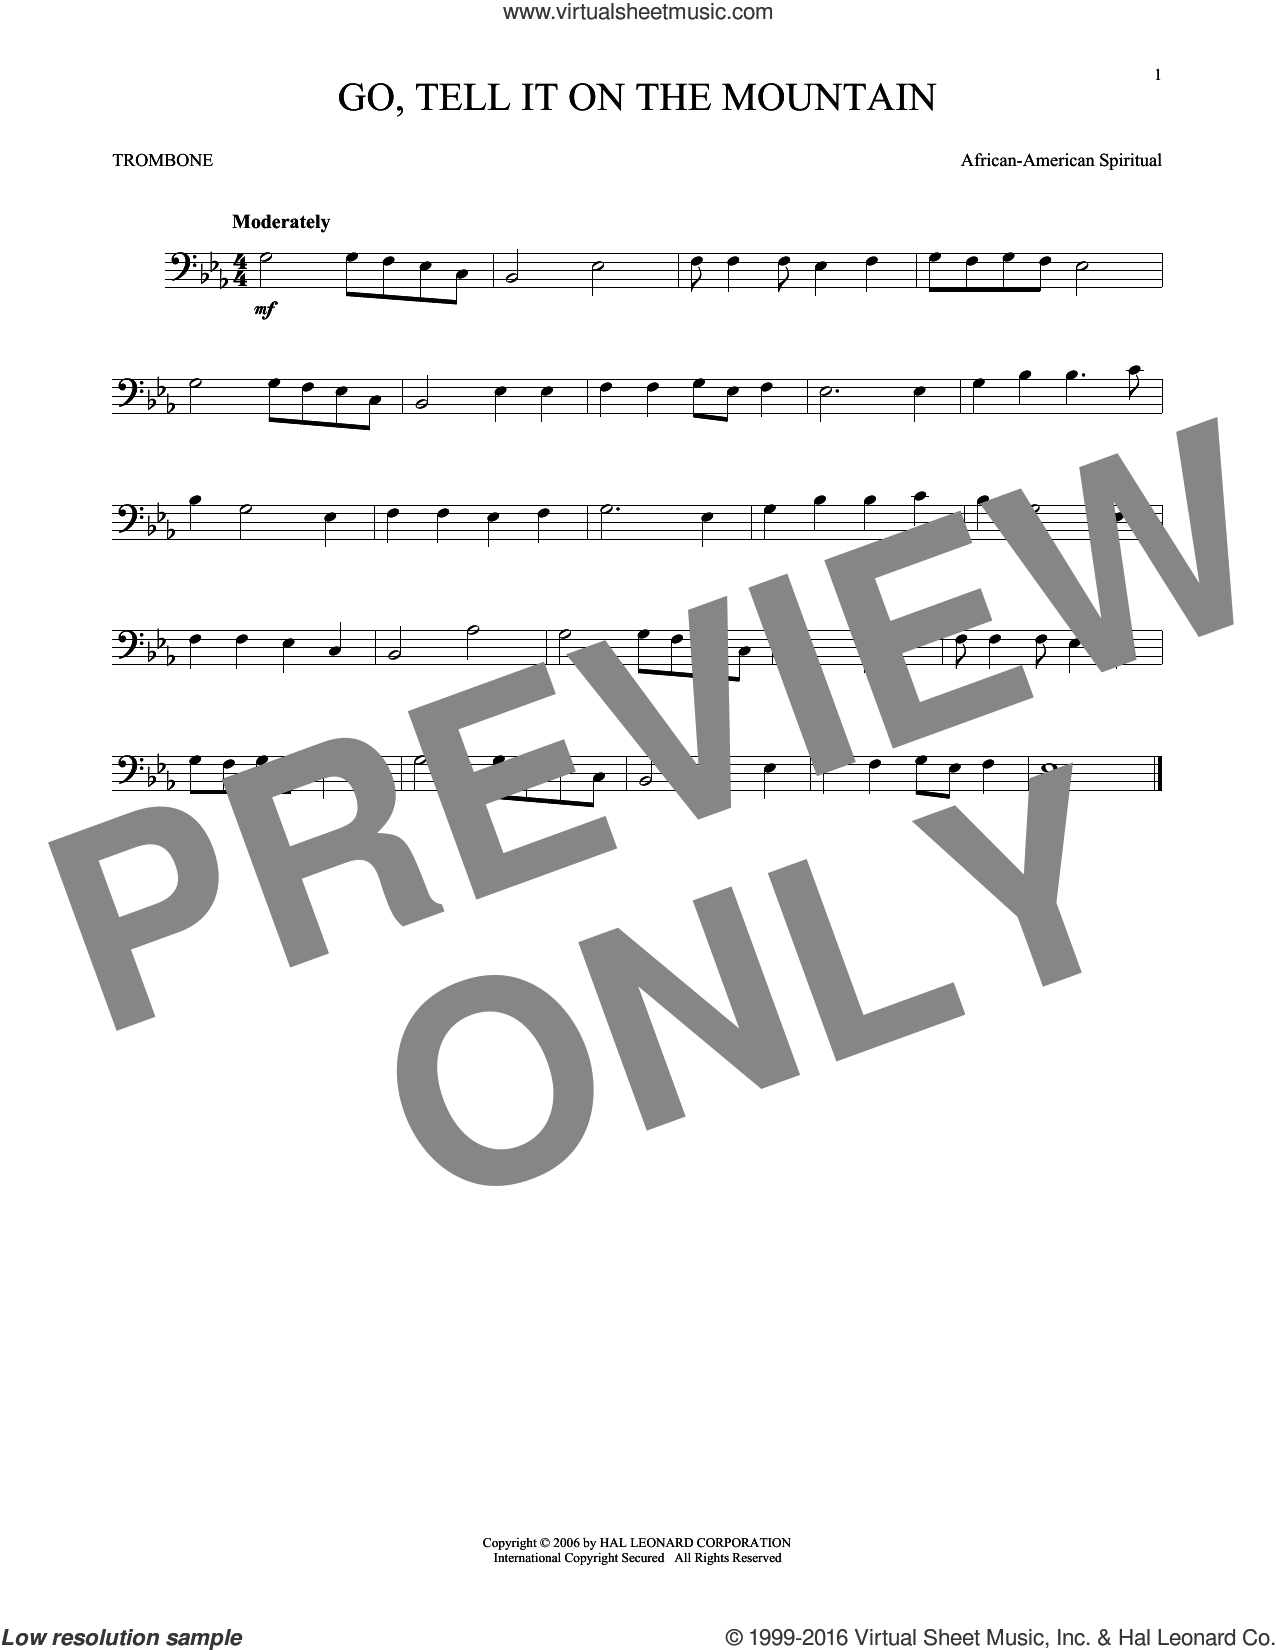 Go, Tell It On The Mountain sheet music for trombone solo by John W. Work, Jr. and Miscellaneous. Score Image Preview.